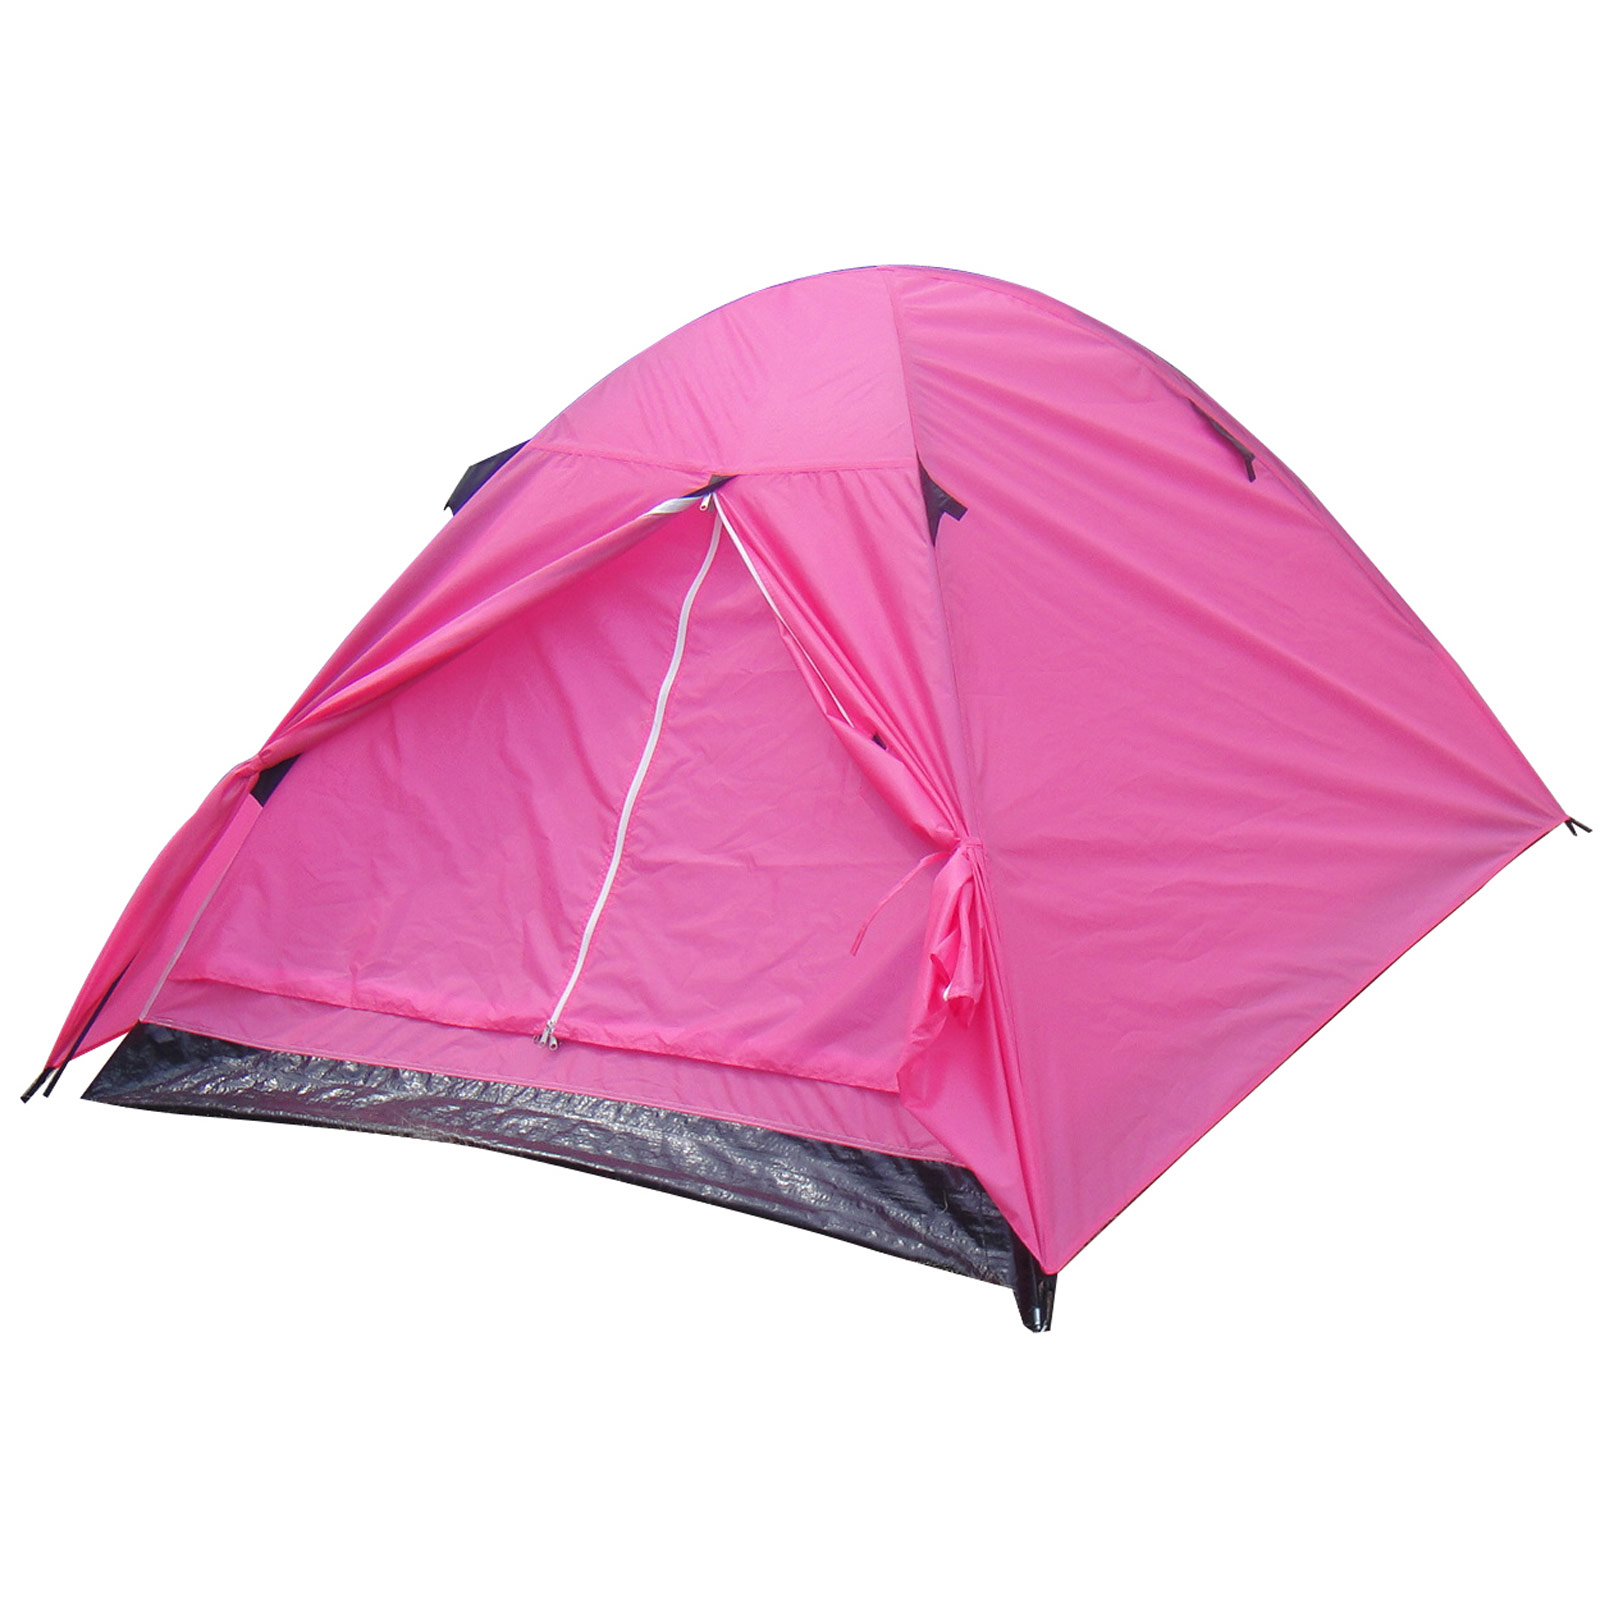 Toilet Shower Tent Sunncamp Lulu XL Toilet tent (SF3013)